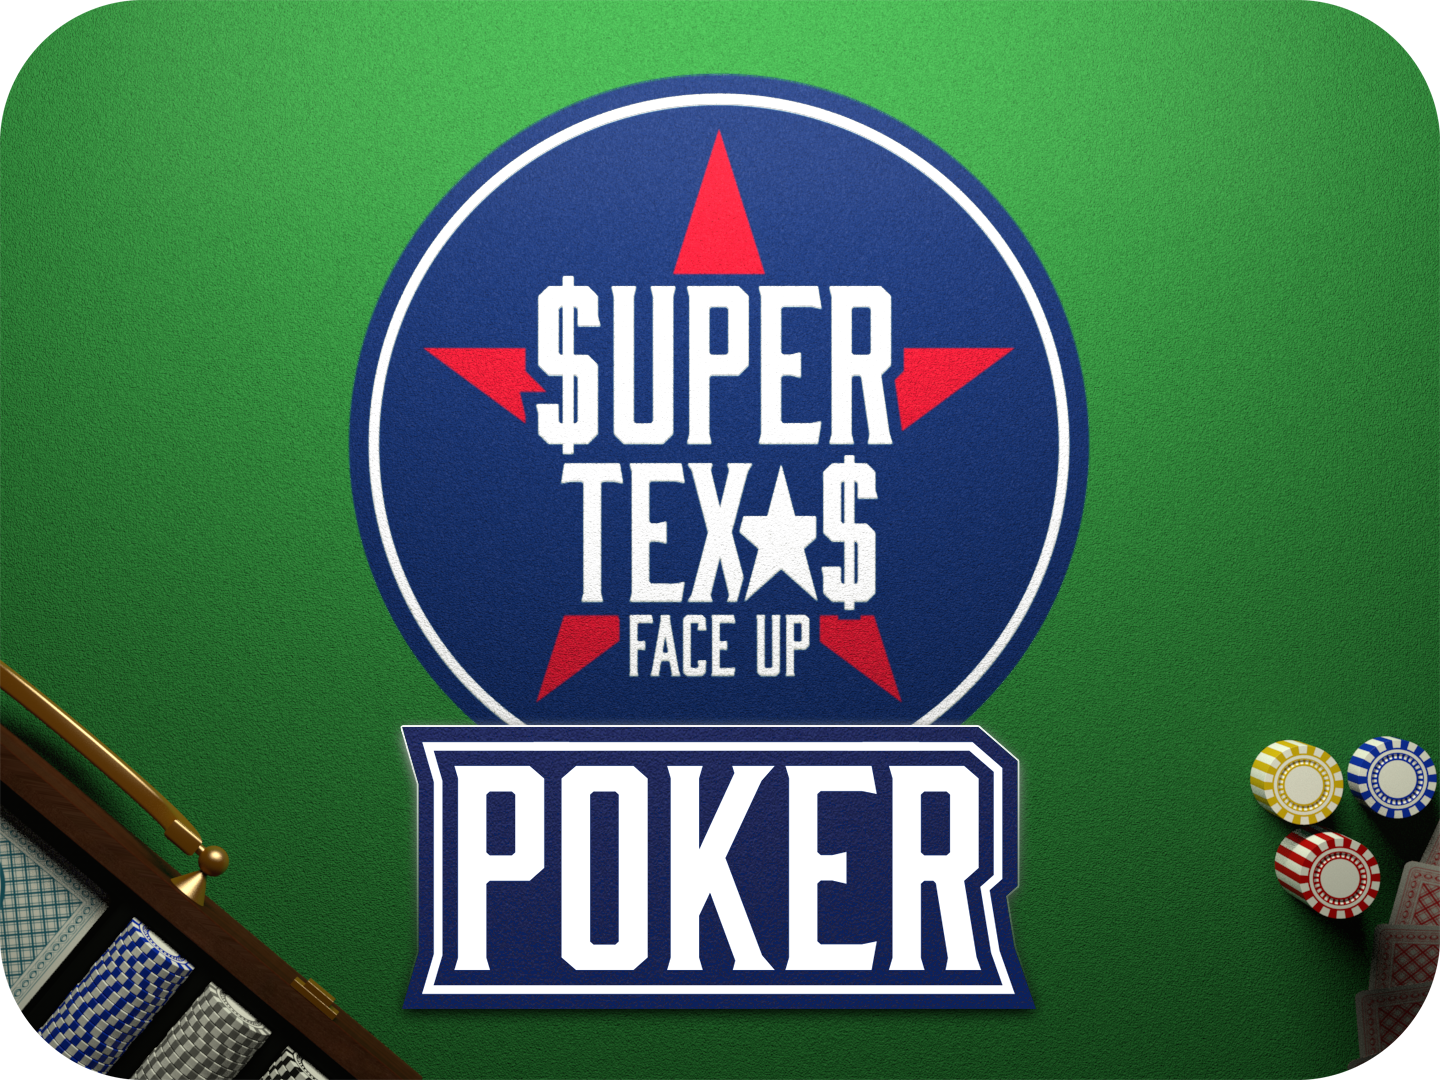 Super Texas Poker 'Face Up'